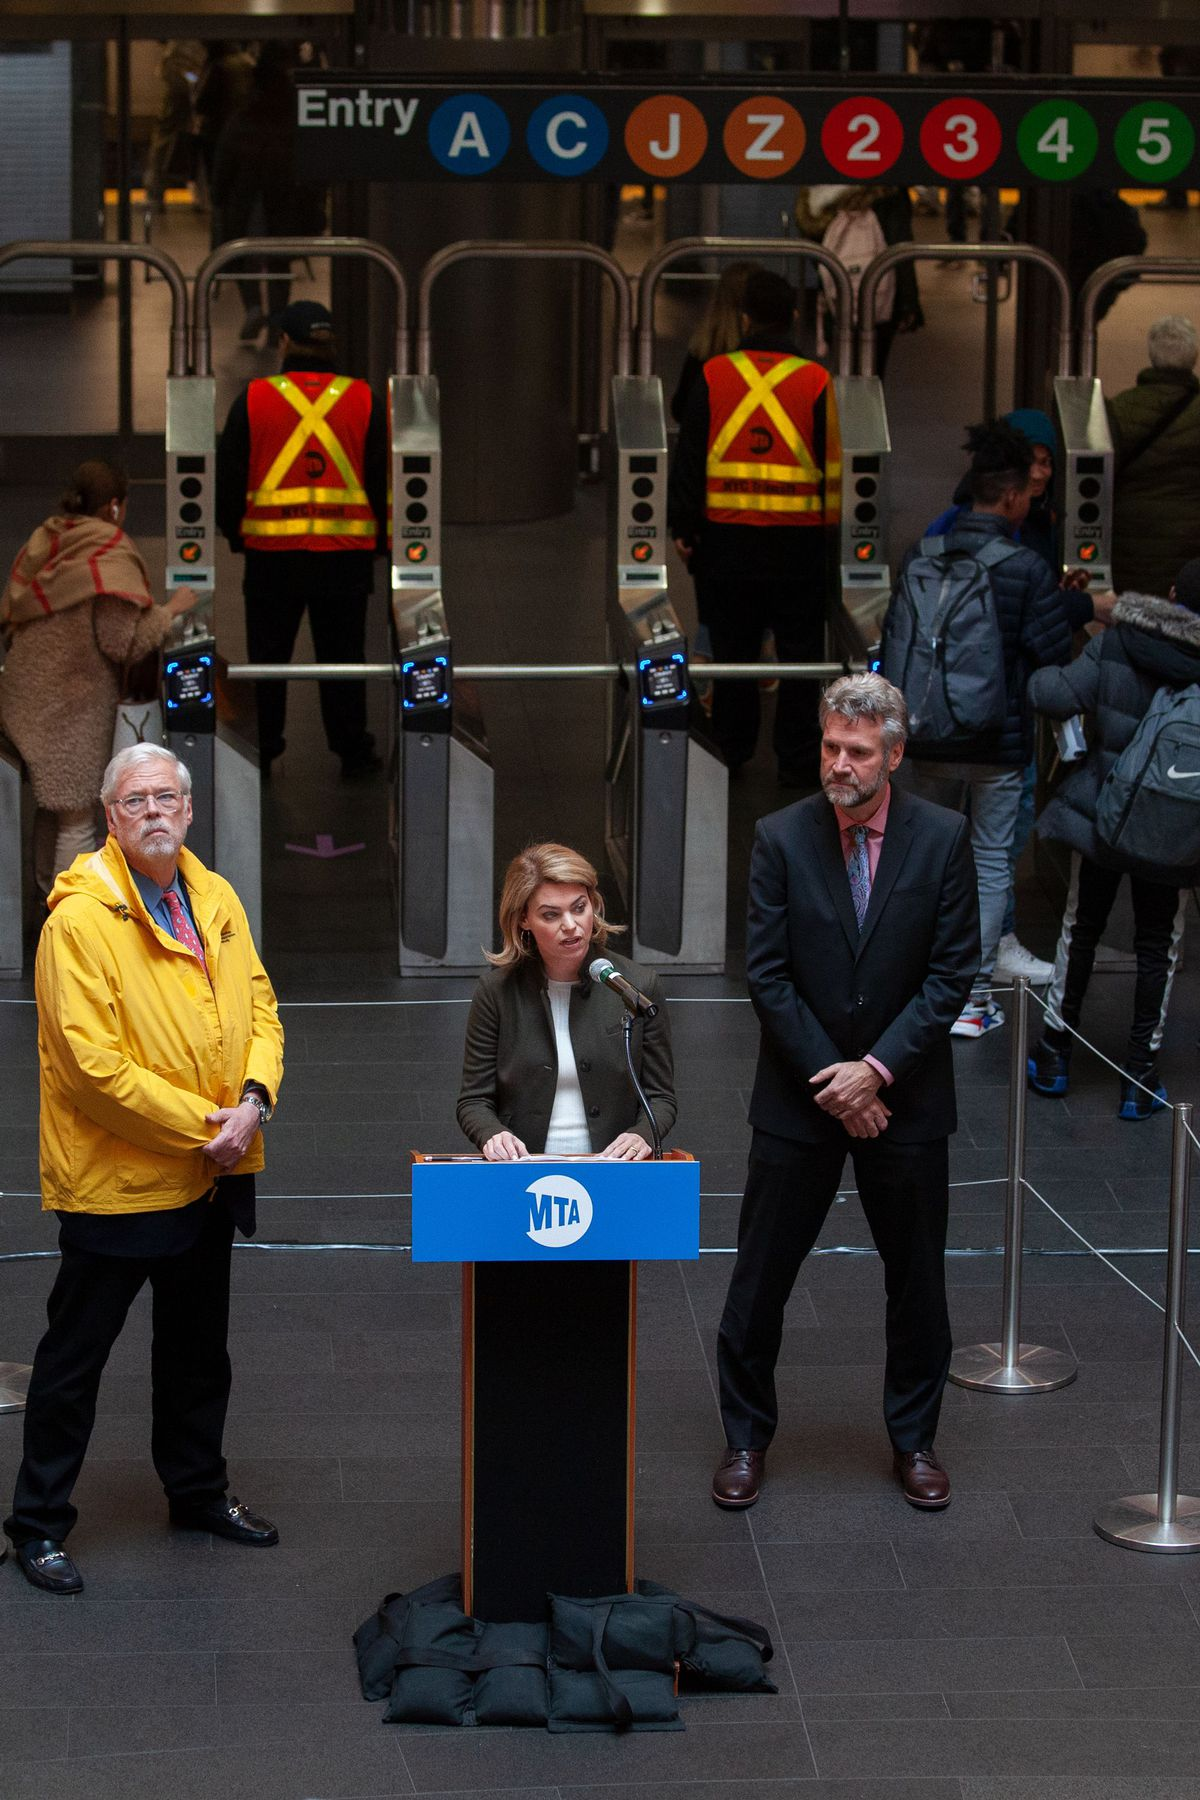 Sarah Feinberg speaks at the Fulton Transit Center about her appointment as interim New York City Transit president.